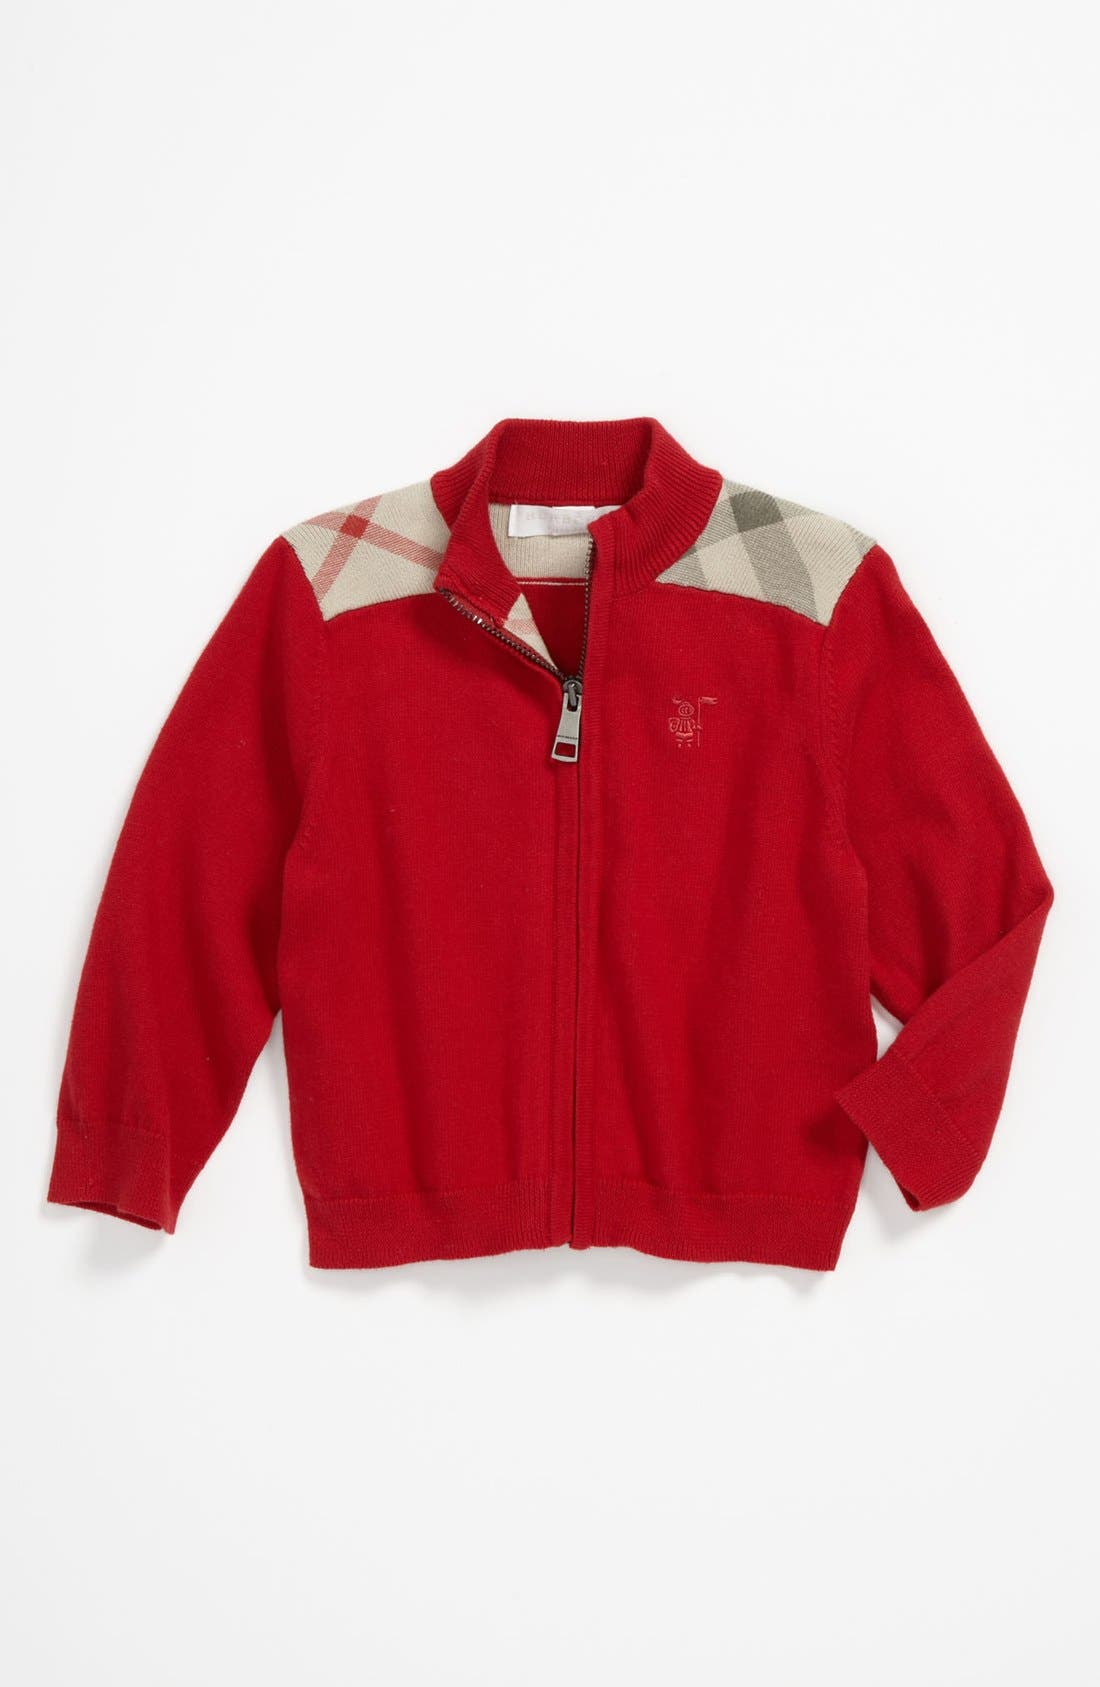 Alternate Image 1 Selected - Burberry 'Christian' Cardigan (Baby)